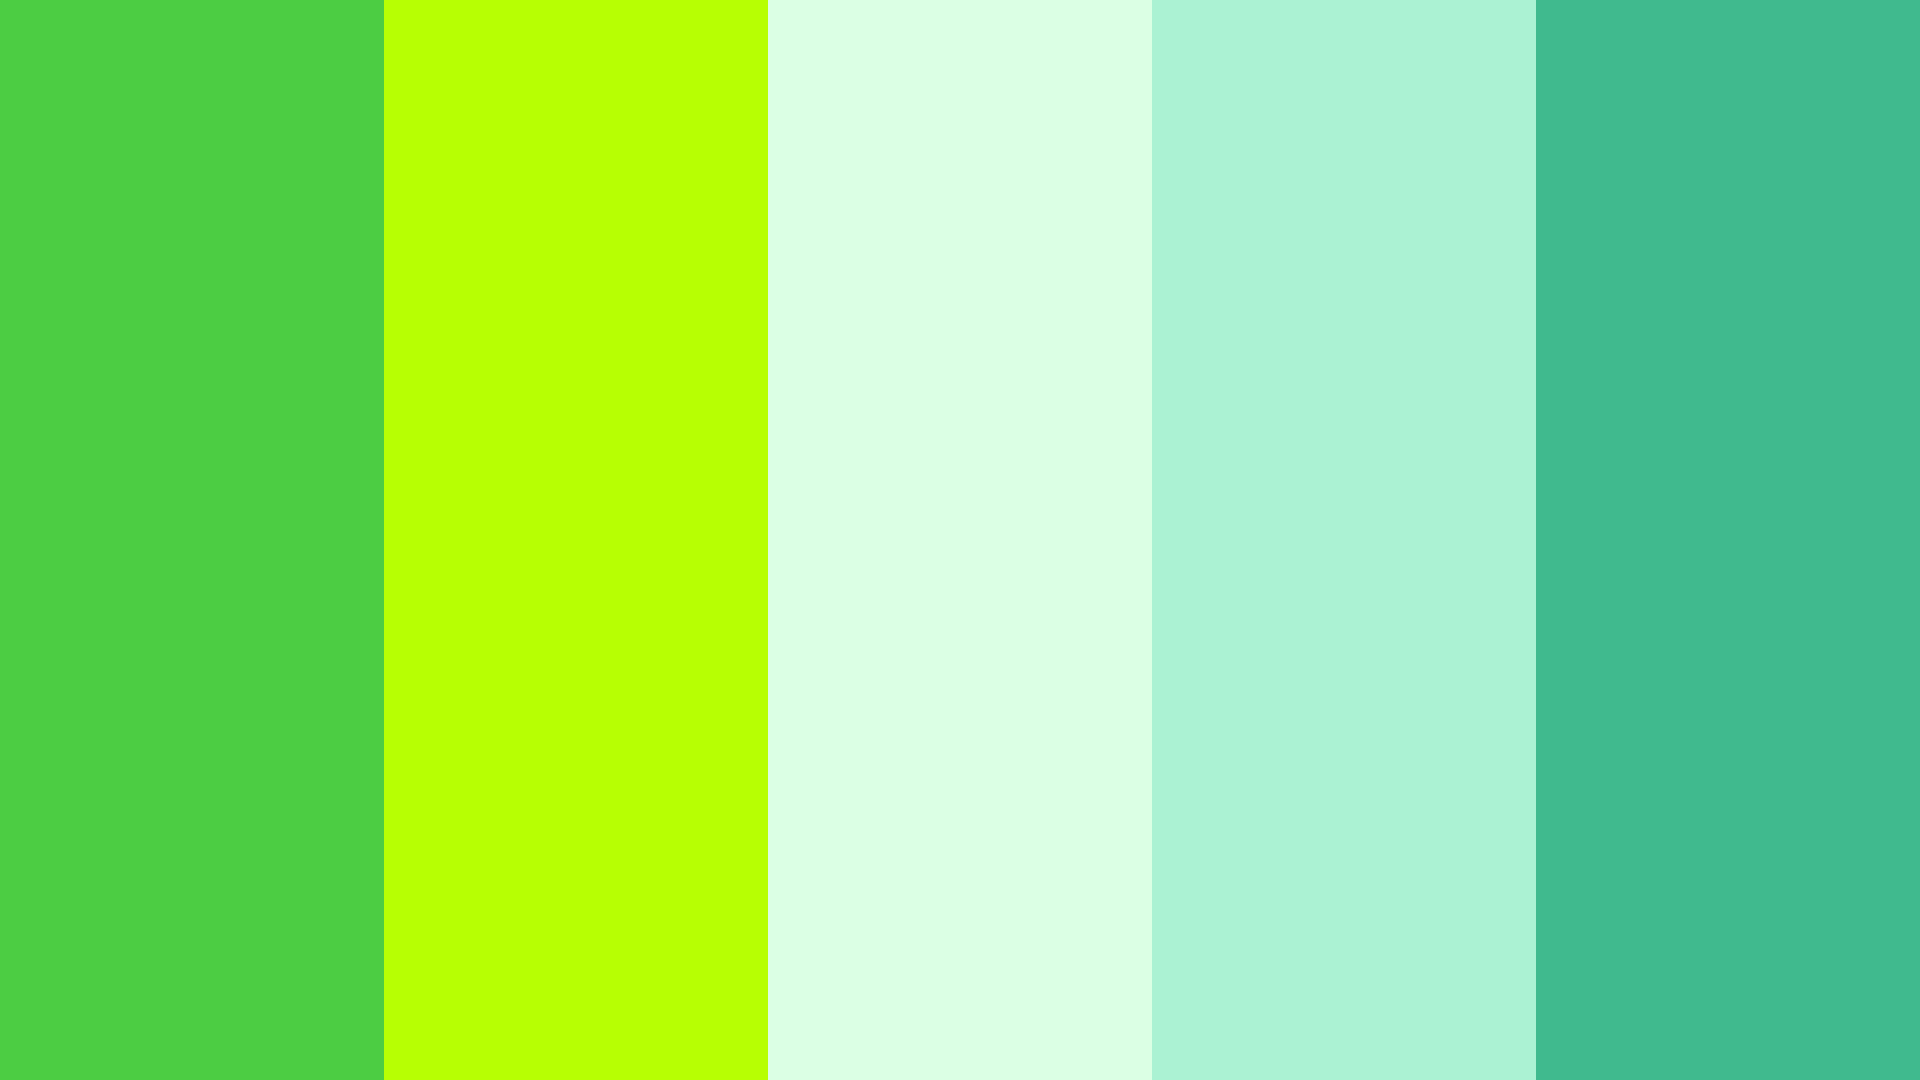 Mint And Lime Green Color Scheme Green Schemecolor Com